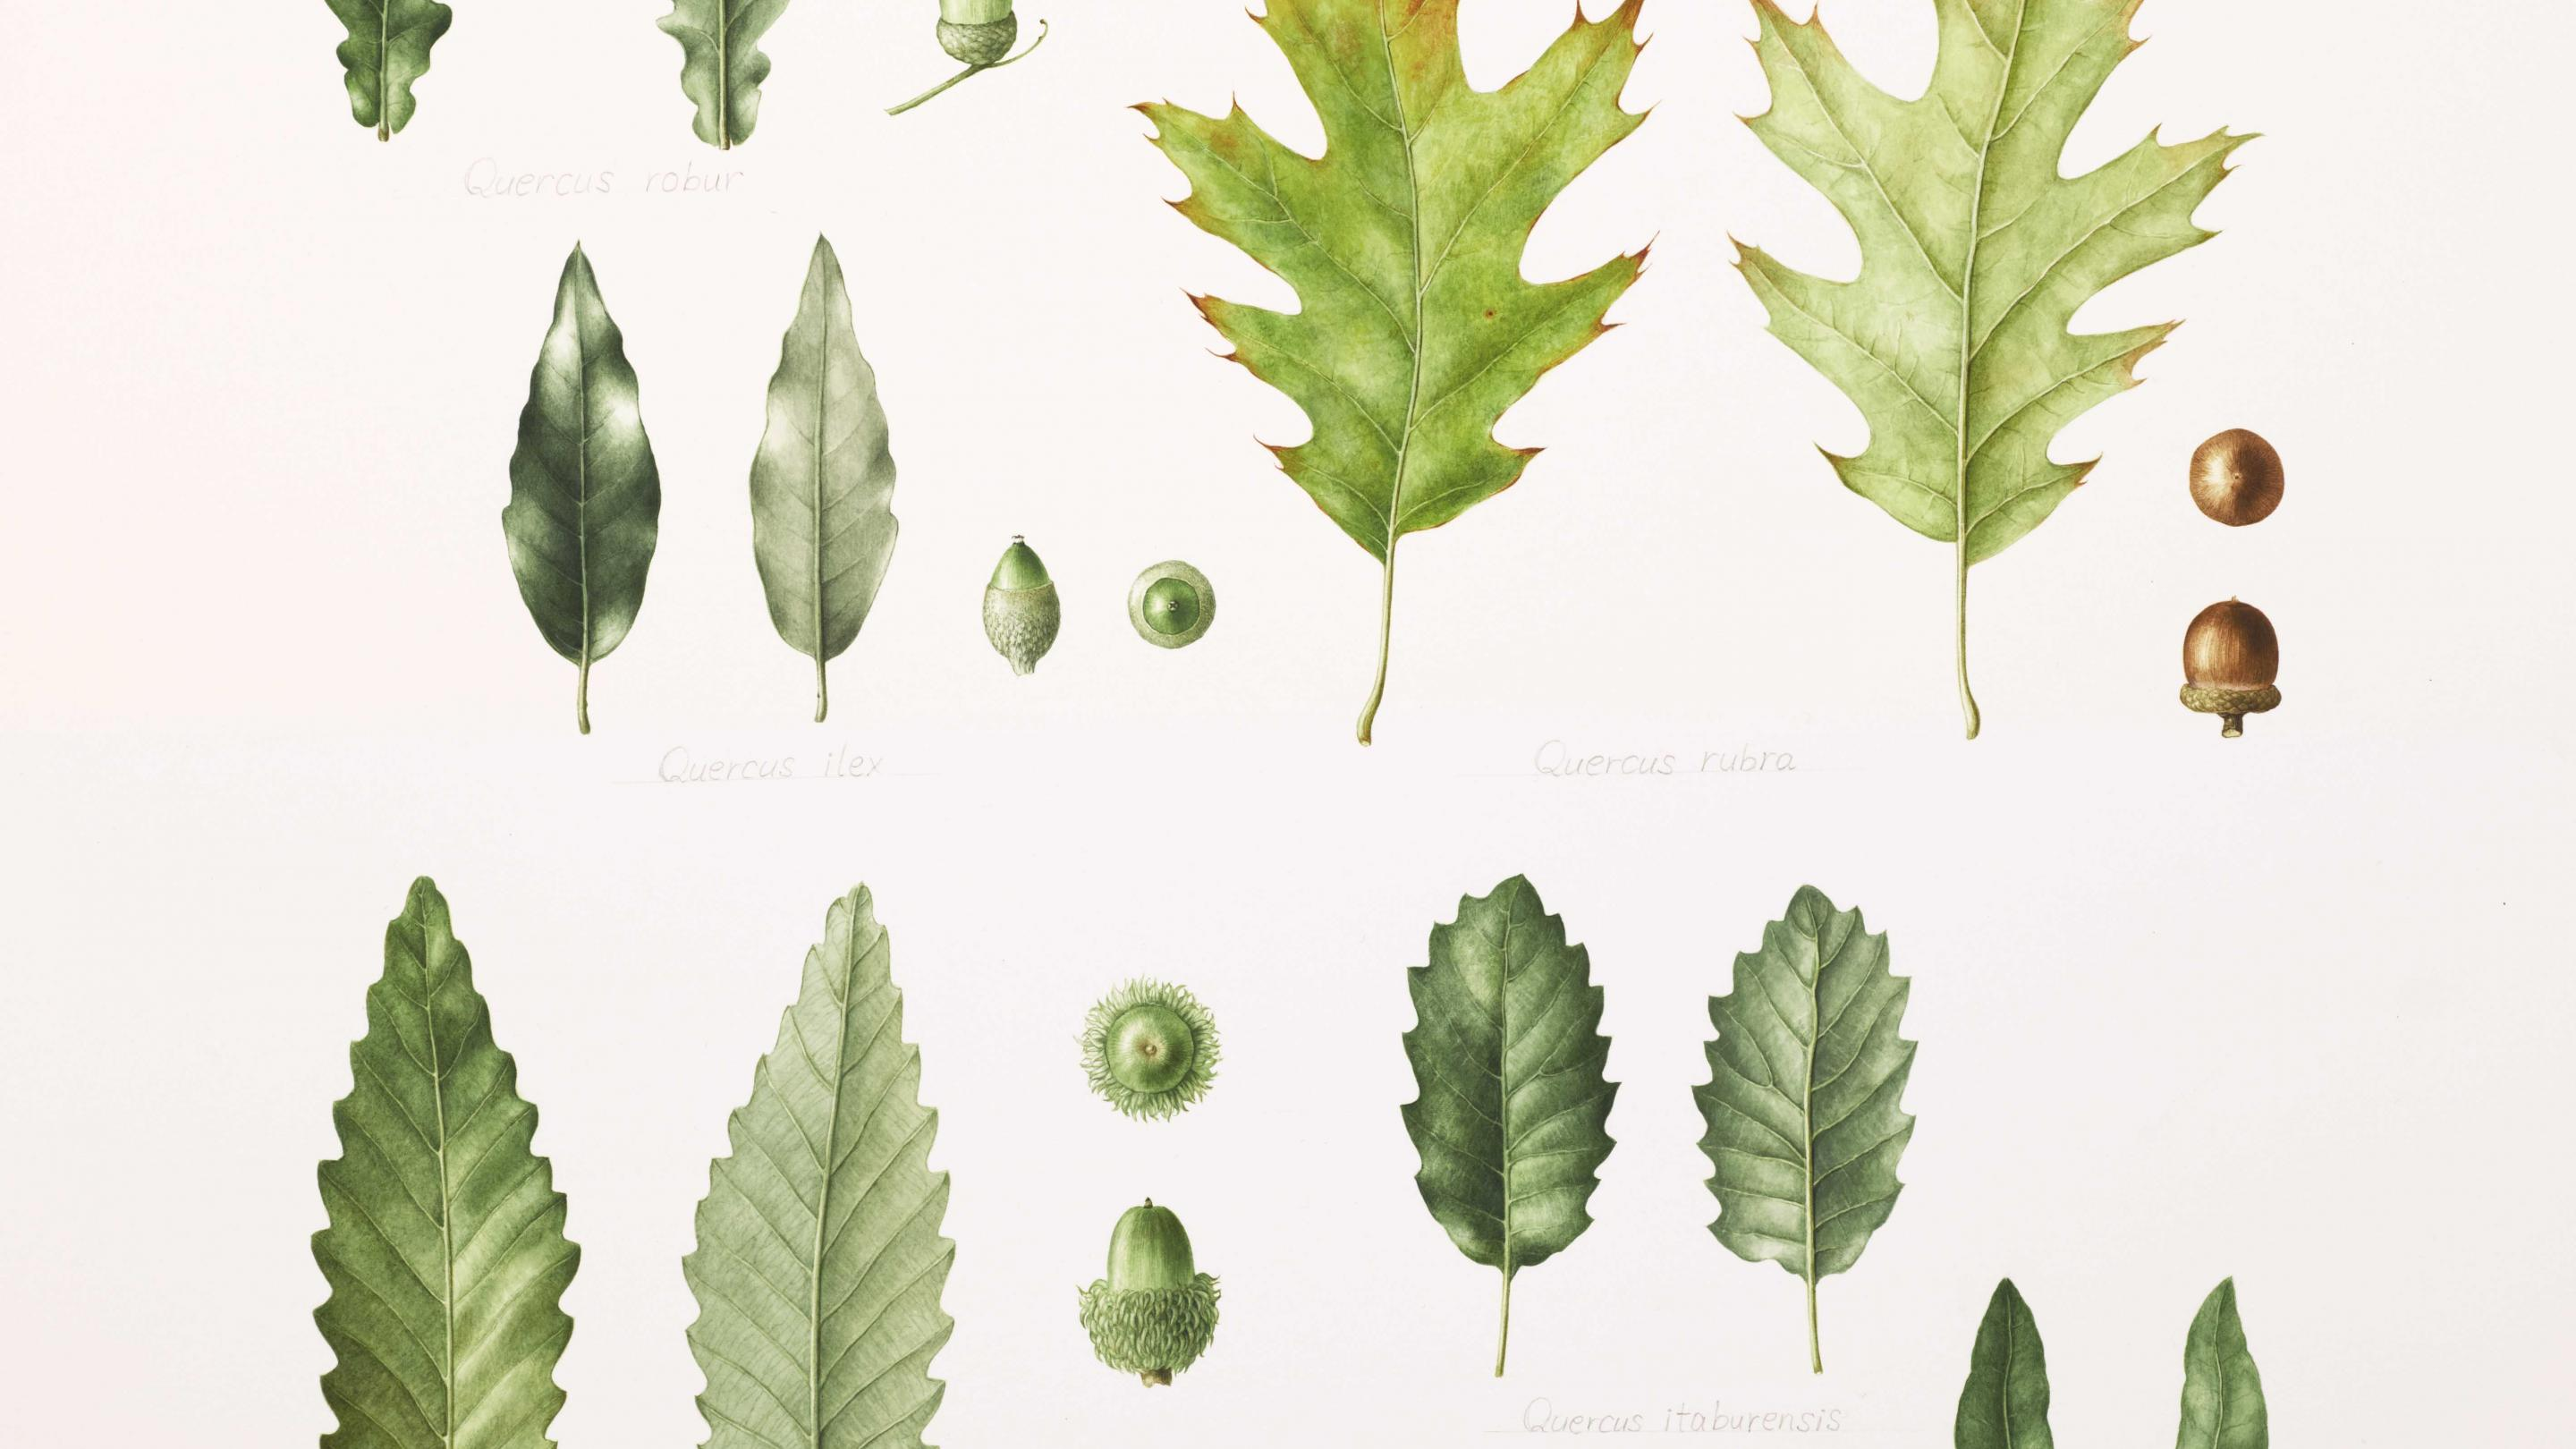 An image of oak leaves and acorns from Kew <em>Quercus</em> spp. Masumi Yamanaka, Watercolour on paper. Private collection.